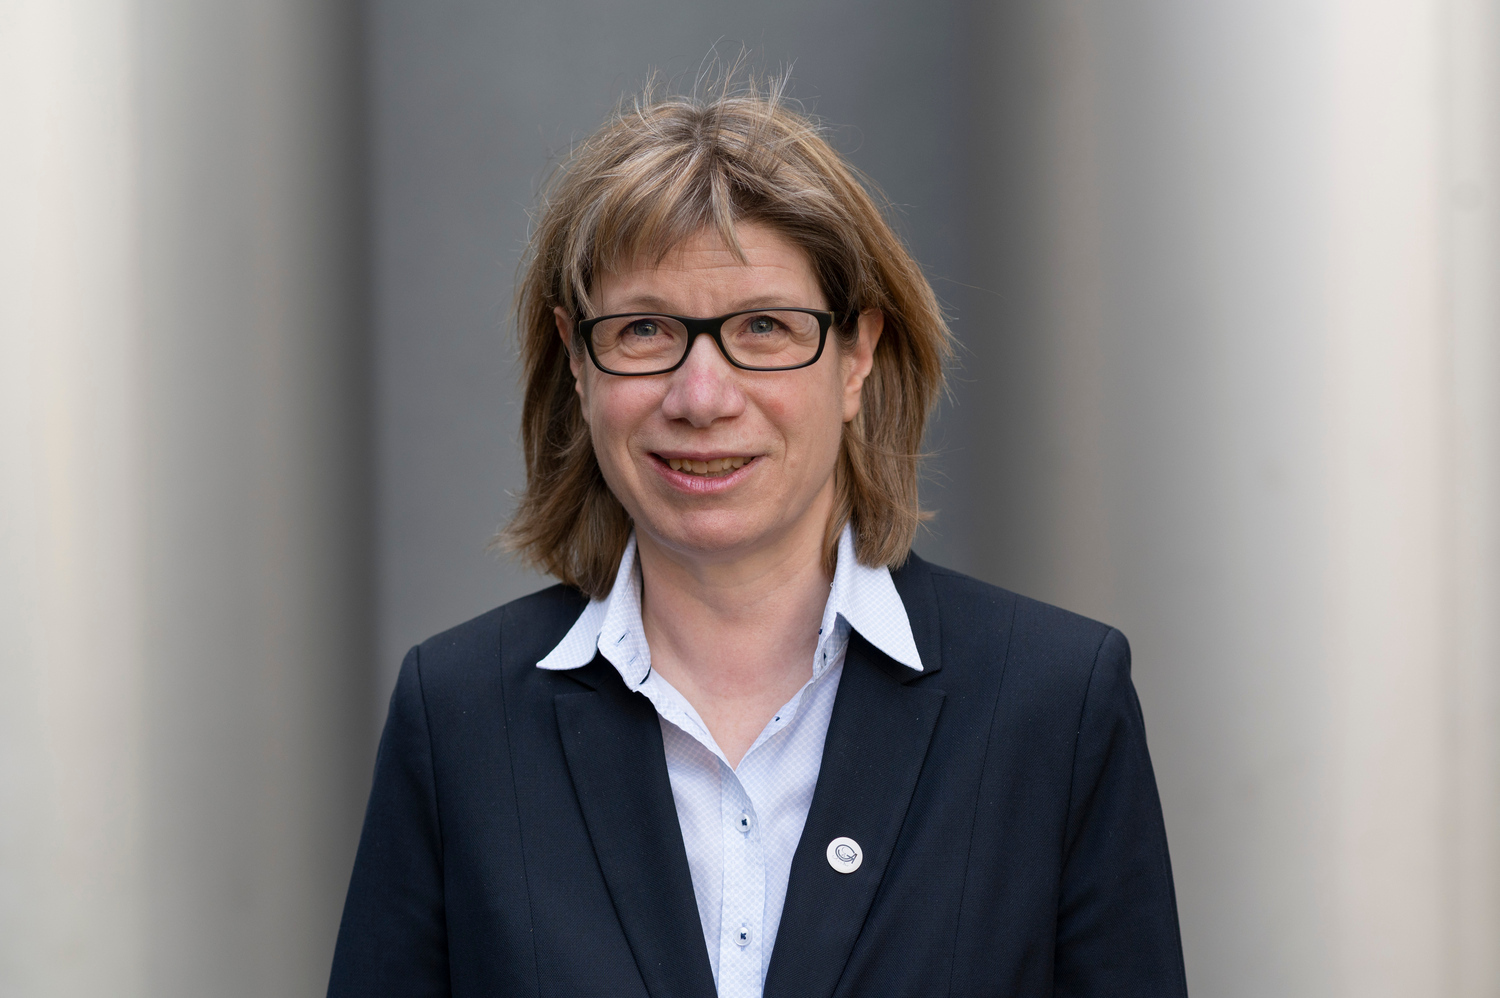 Professor Anke Holler